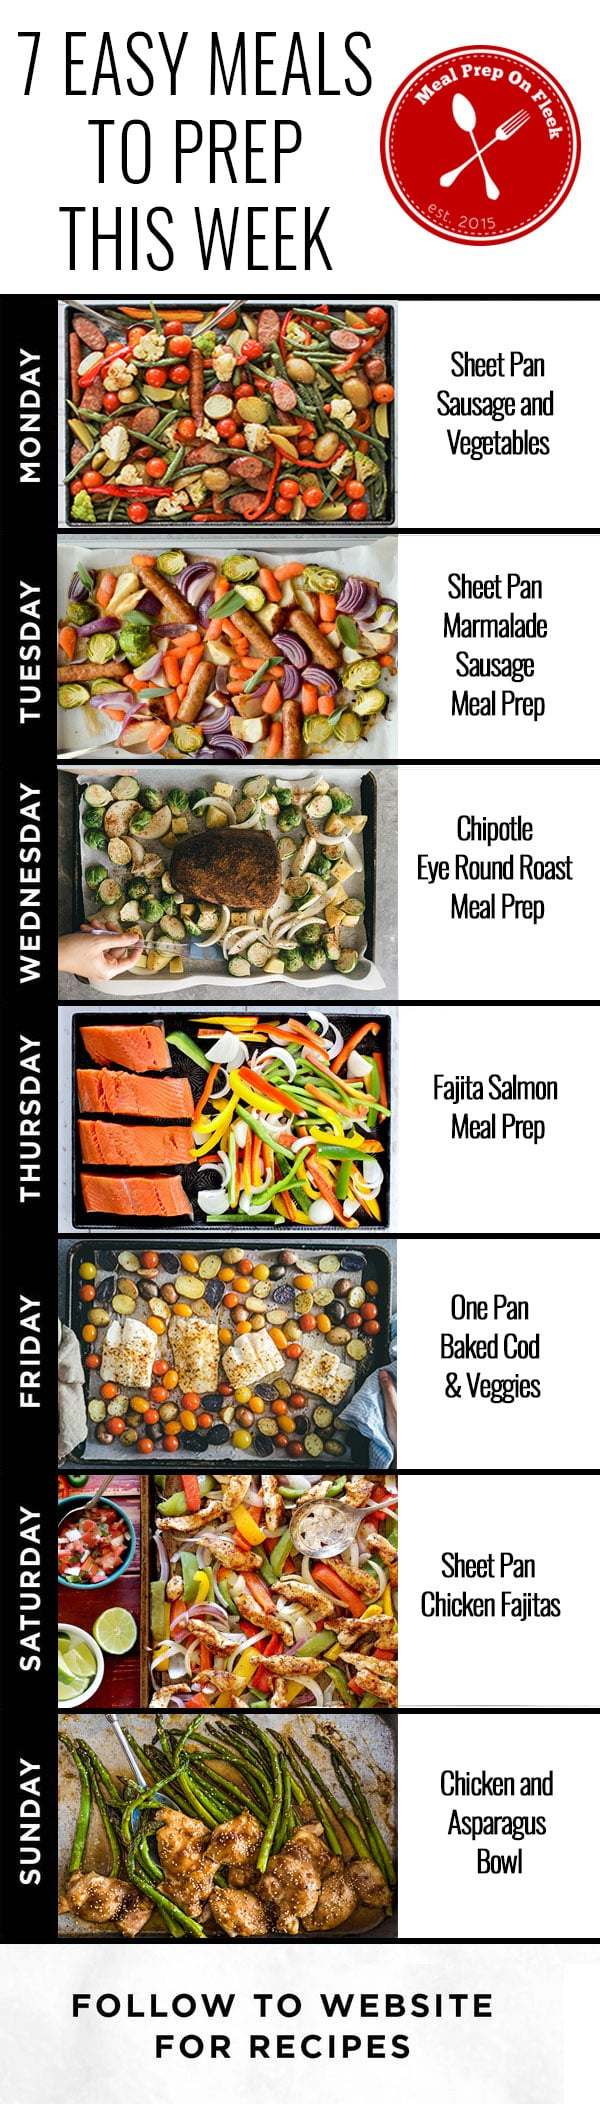 7 Easy Meal Prep Ideas to Prep Once And Eat Clean All Week 7 Easy Meal Prep Ideas to Prep Once And Eat Clean All Week new pictures